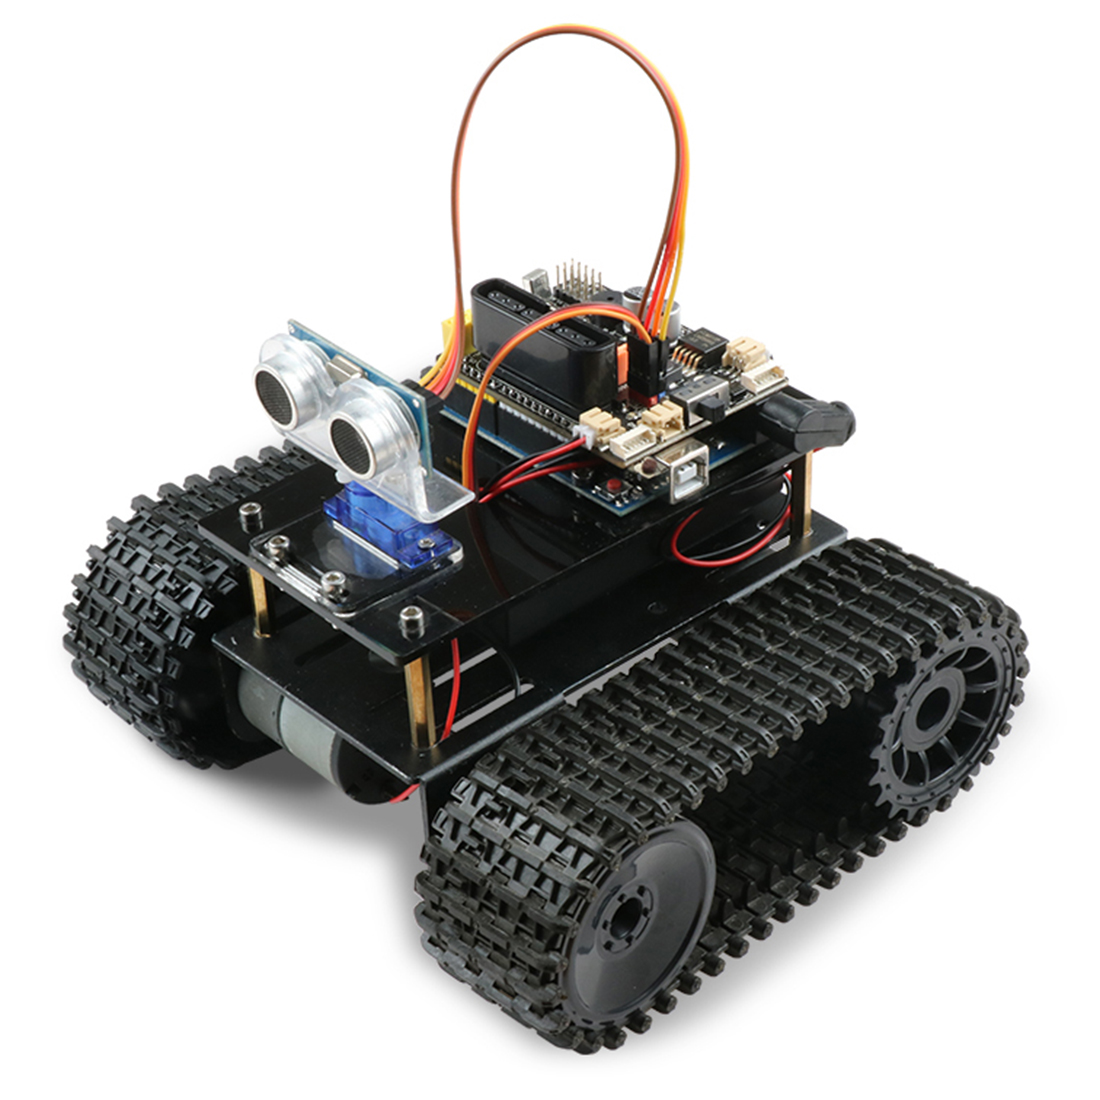 DIY Obstacle Avoidance Smart Programmable Robot Tank Educational Learning Kit For Arduino UNO Programmable Toys Kids Adults Gift